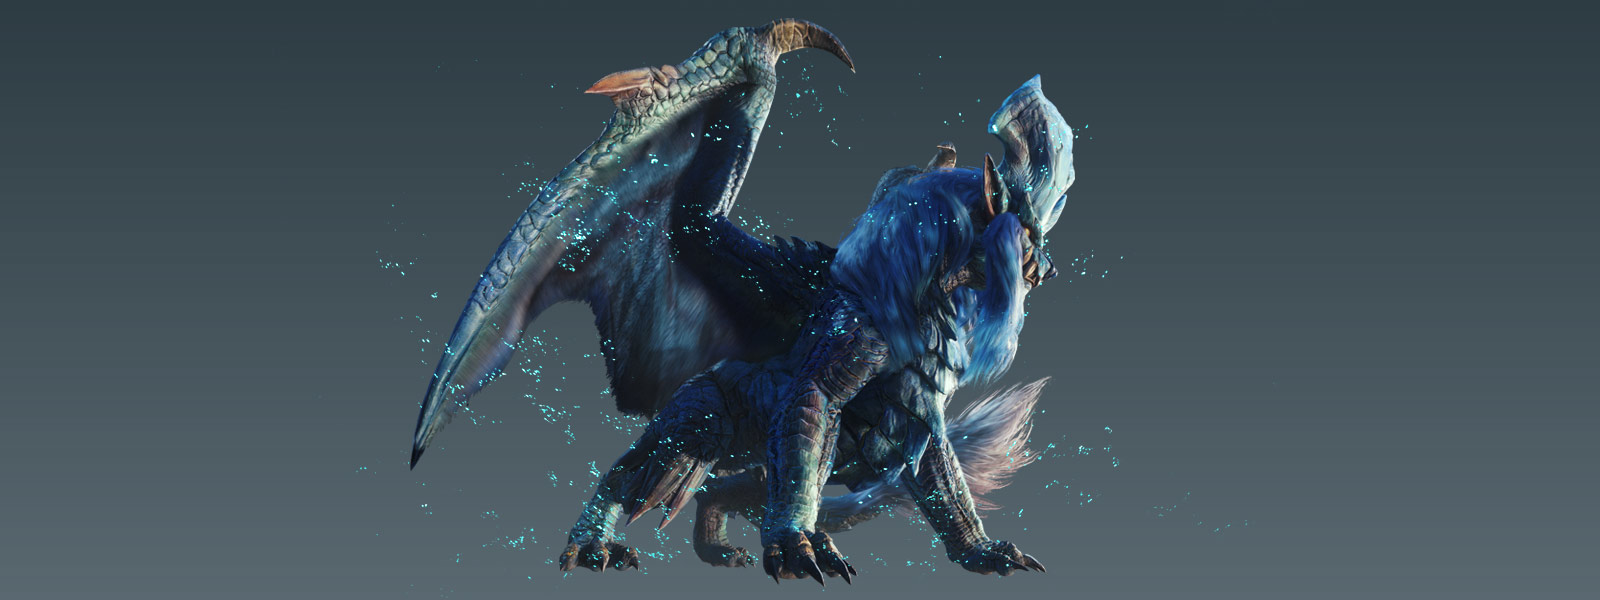 Side view of the Elder Dragon Lunastra